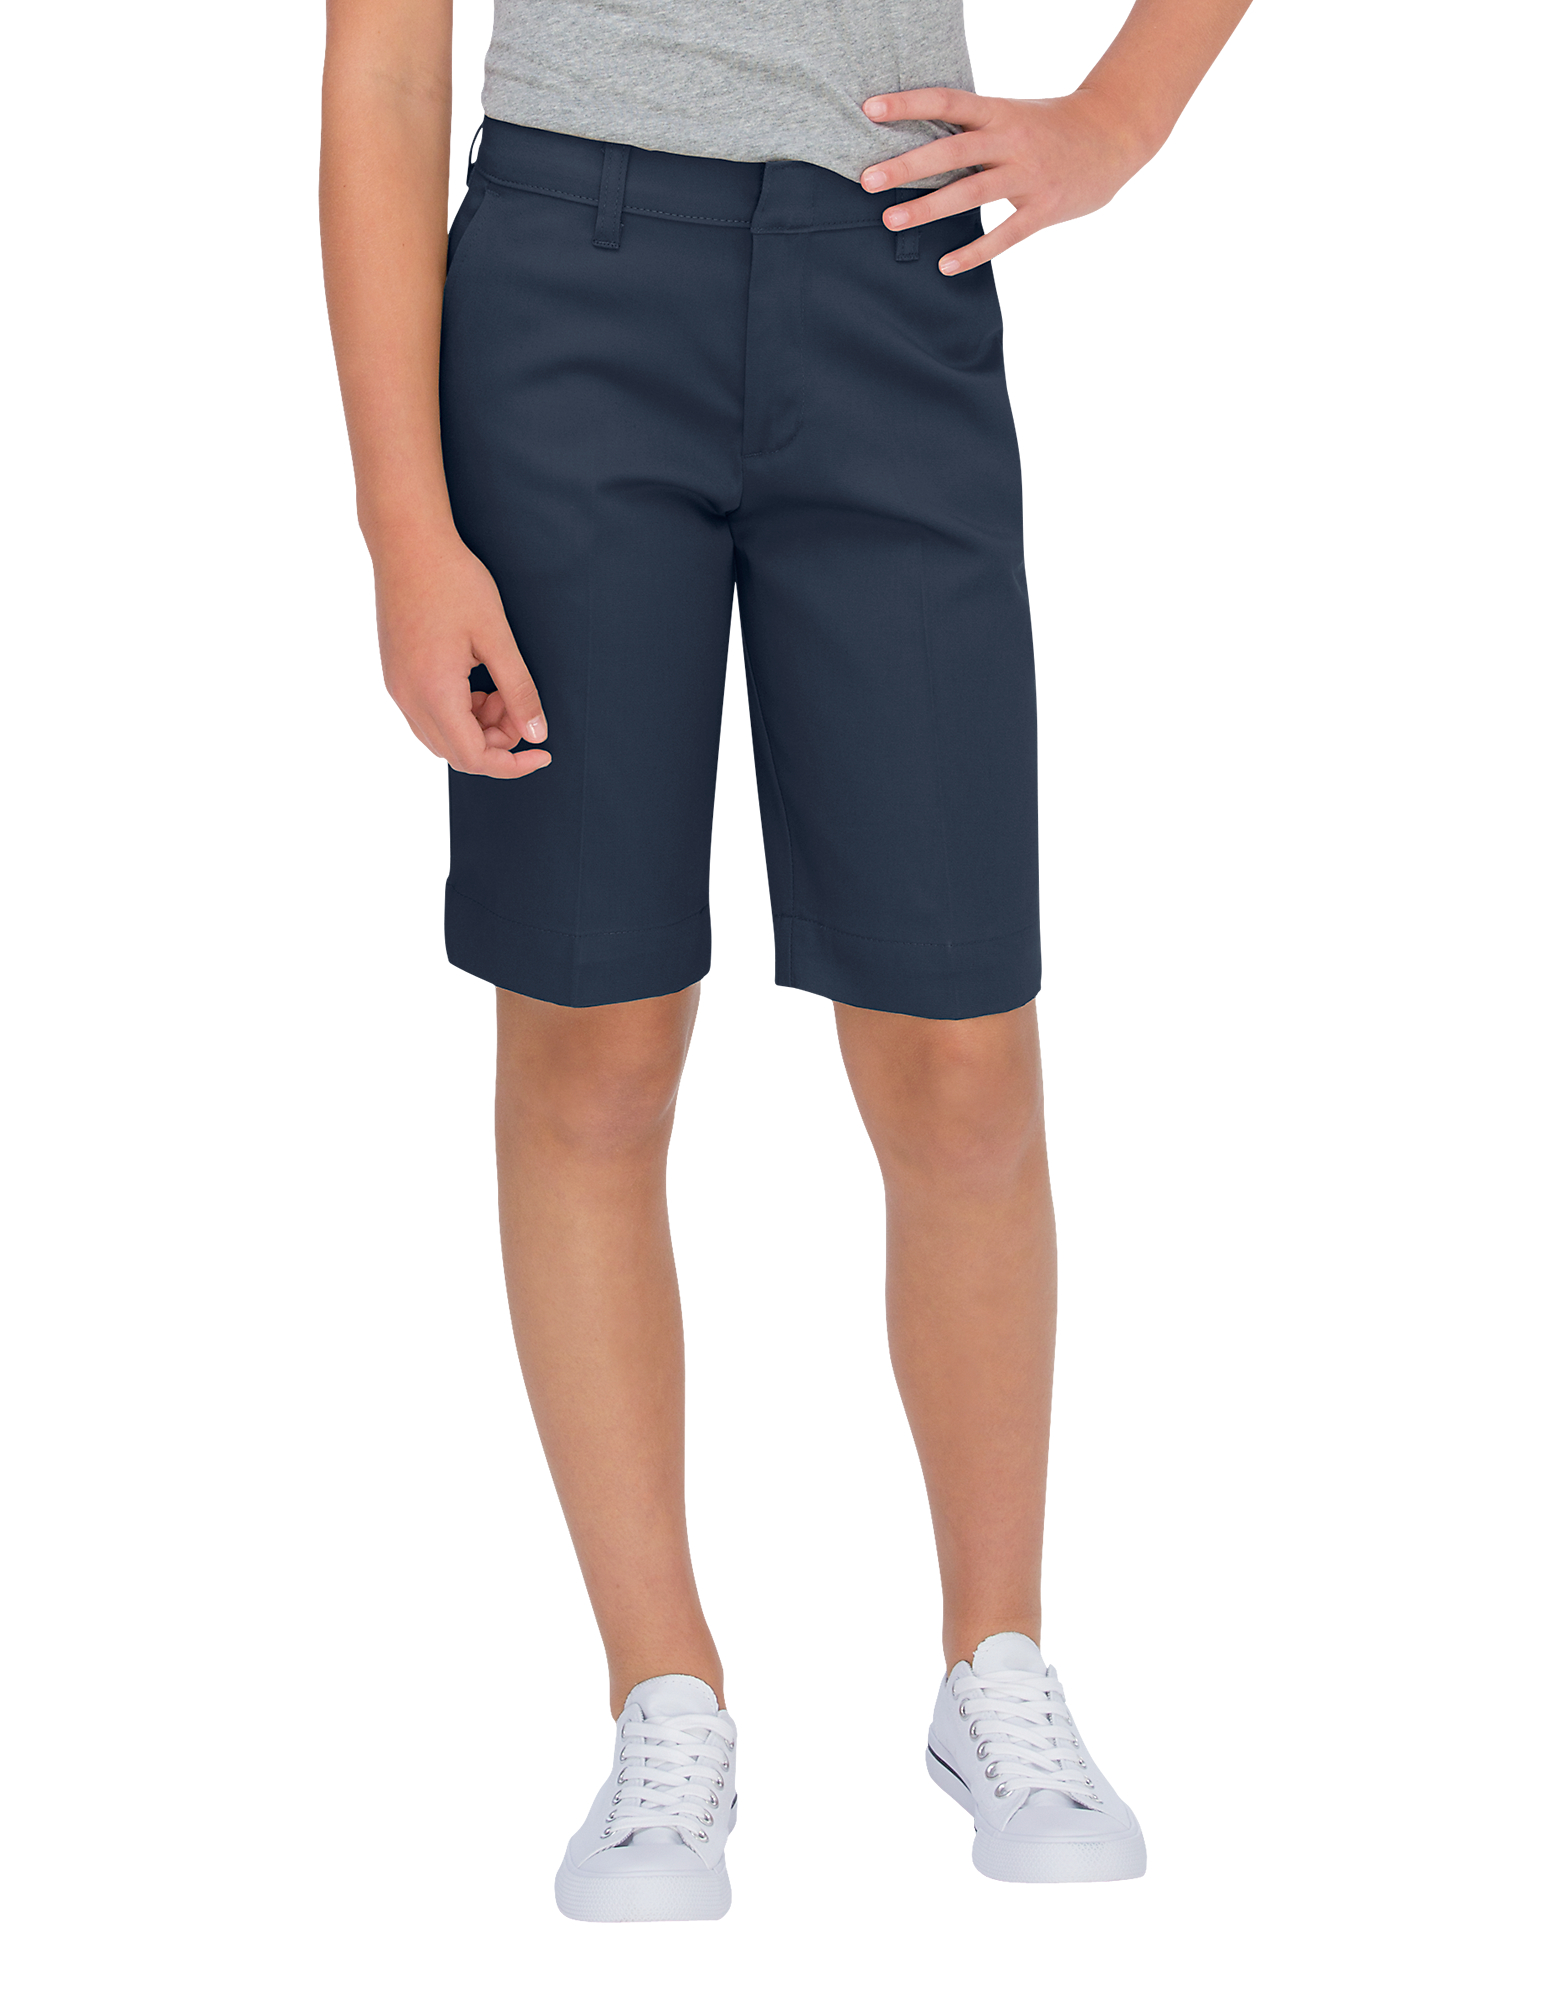 Girls' Classic Fit Bermuda Stretch Twill Shorts, 4-20 - Dark Navy (DN)